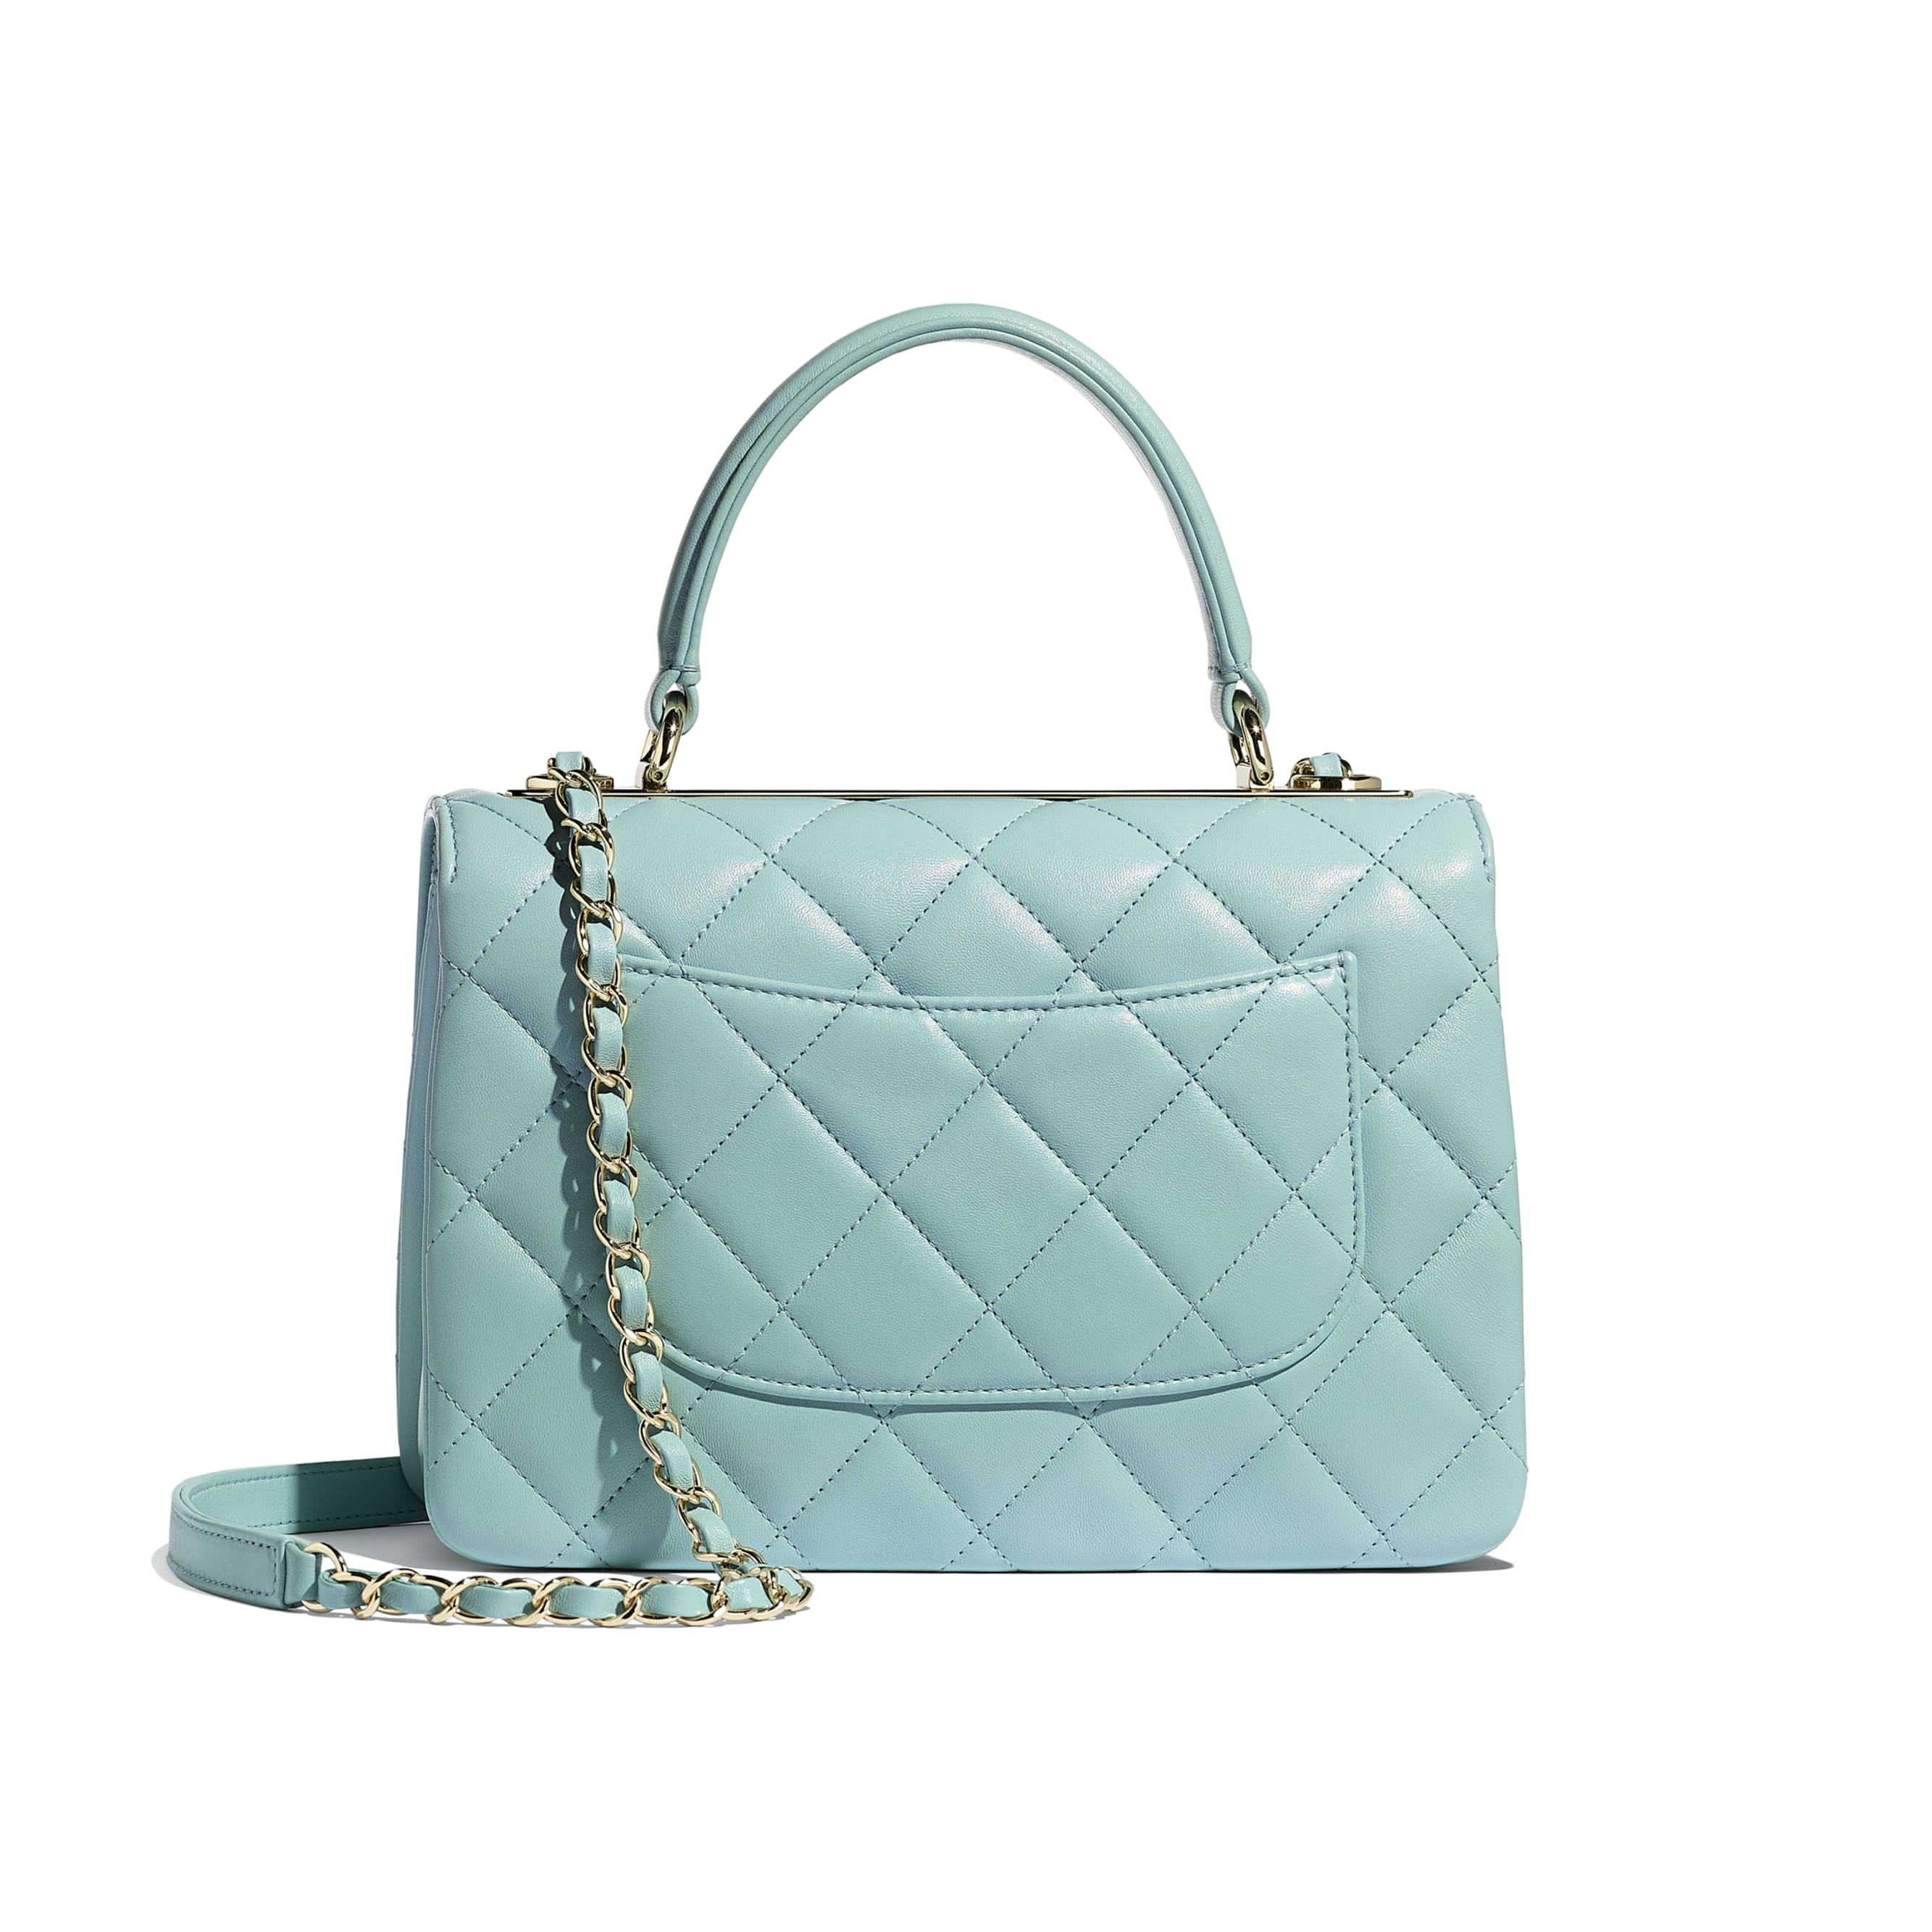 Small Flap Bag With Top Handle - Light Blue - Lambskin - CHANEL - Alternative view - see standard sized version